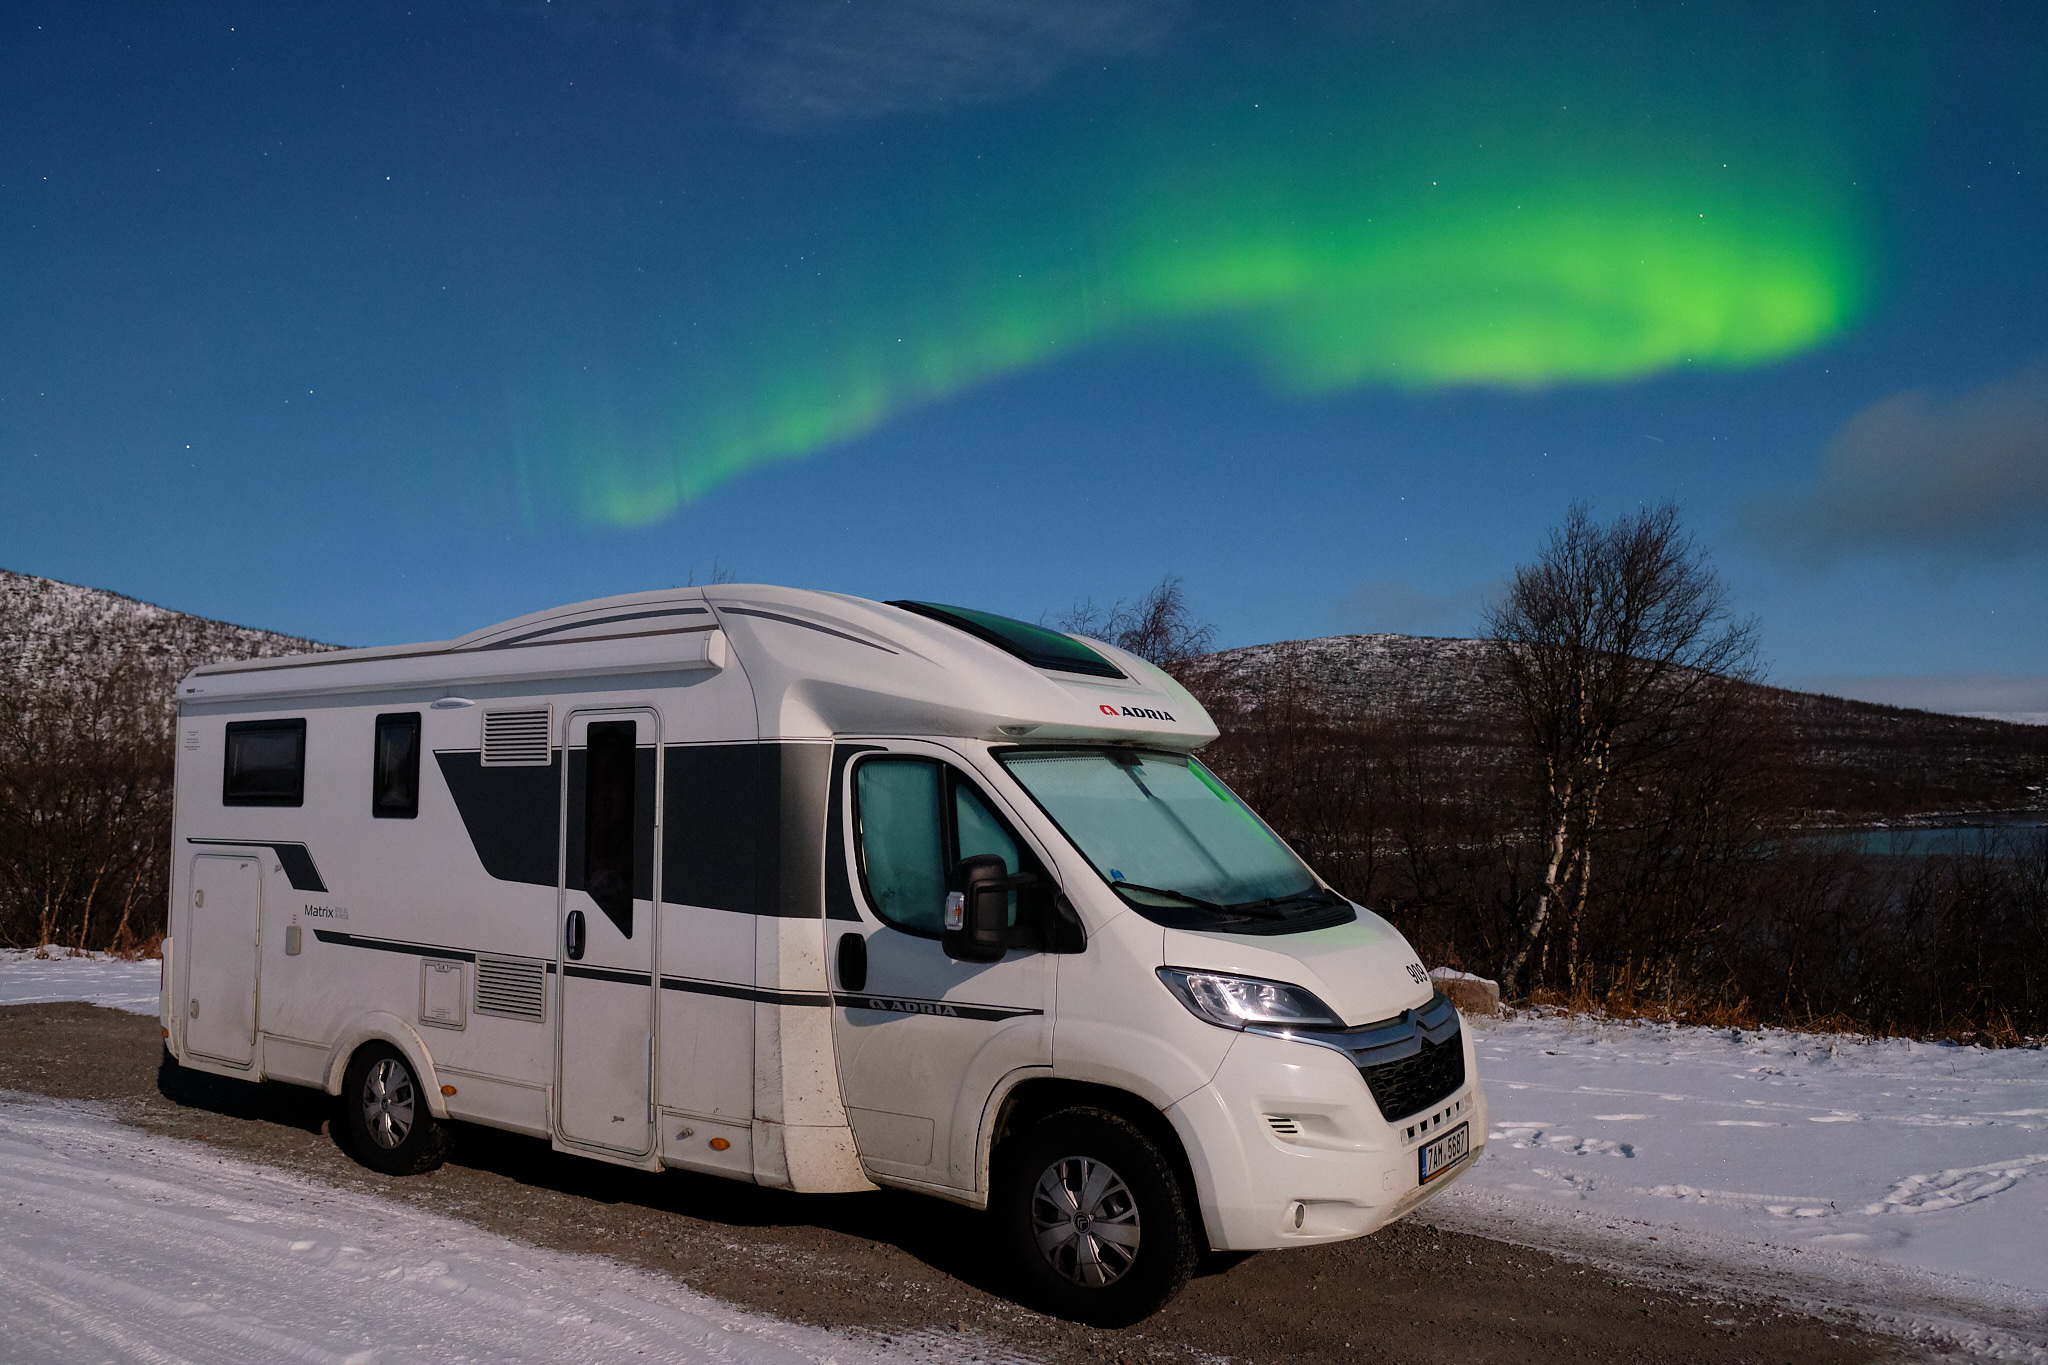 Camper under the aurora borealis